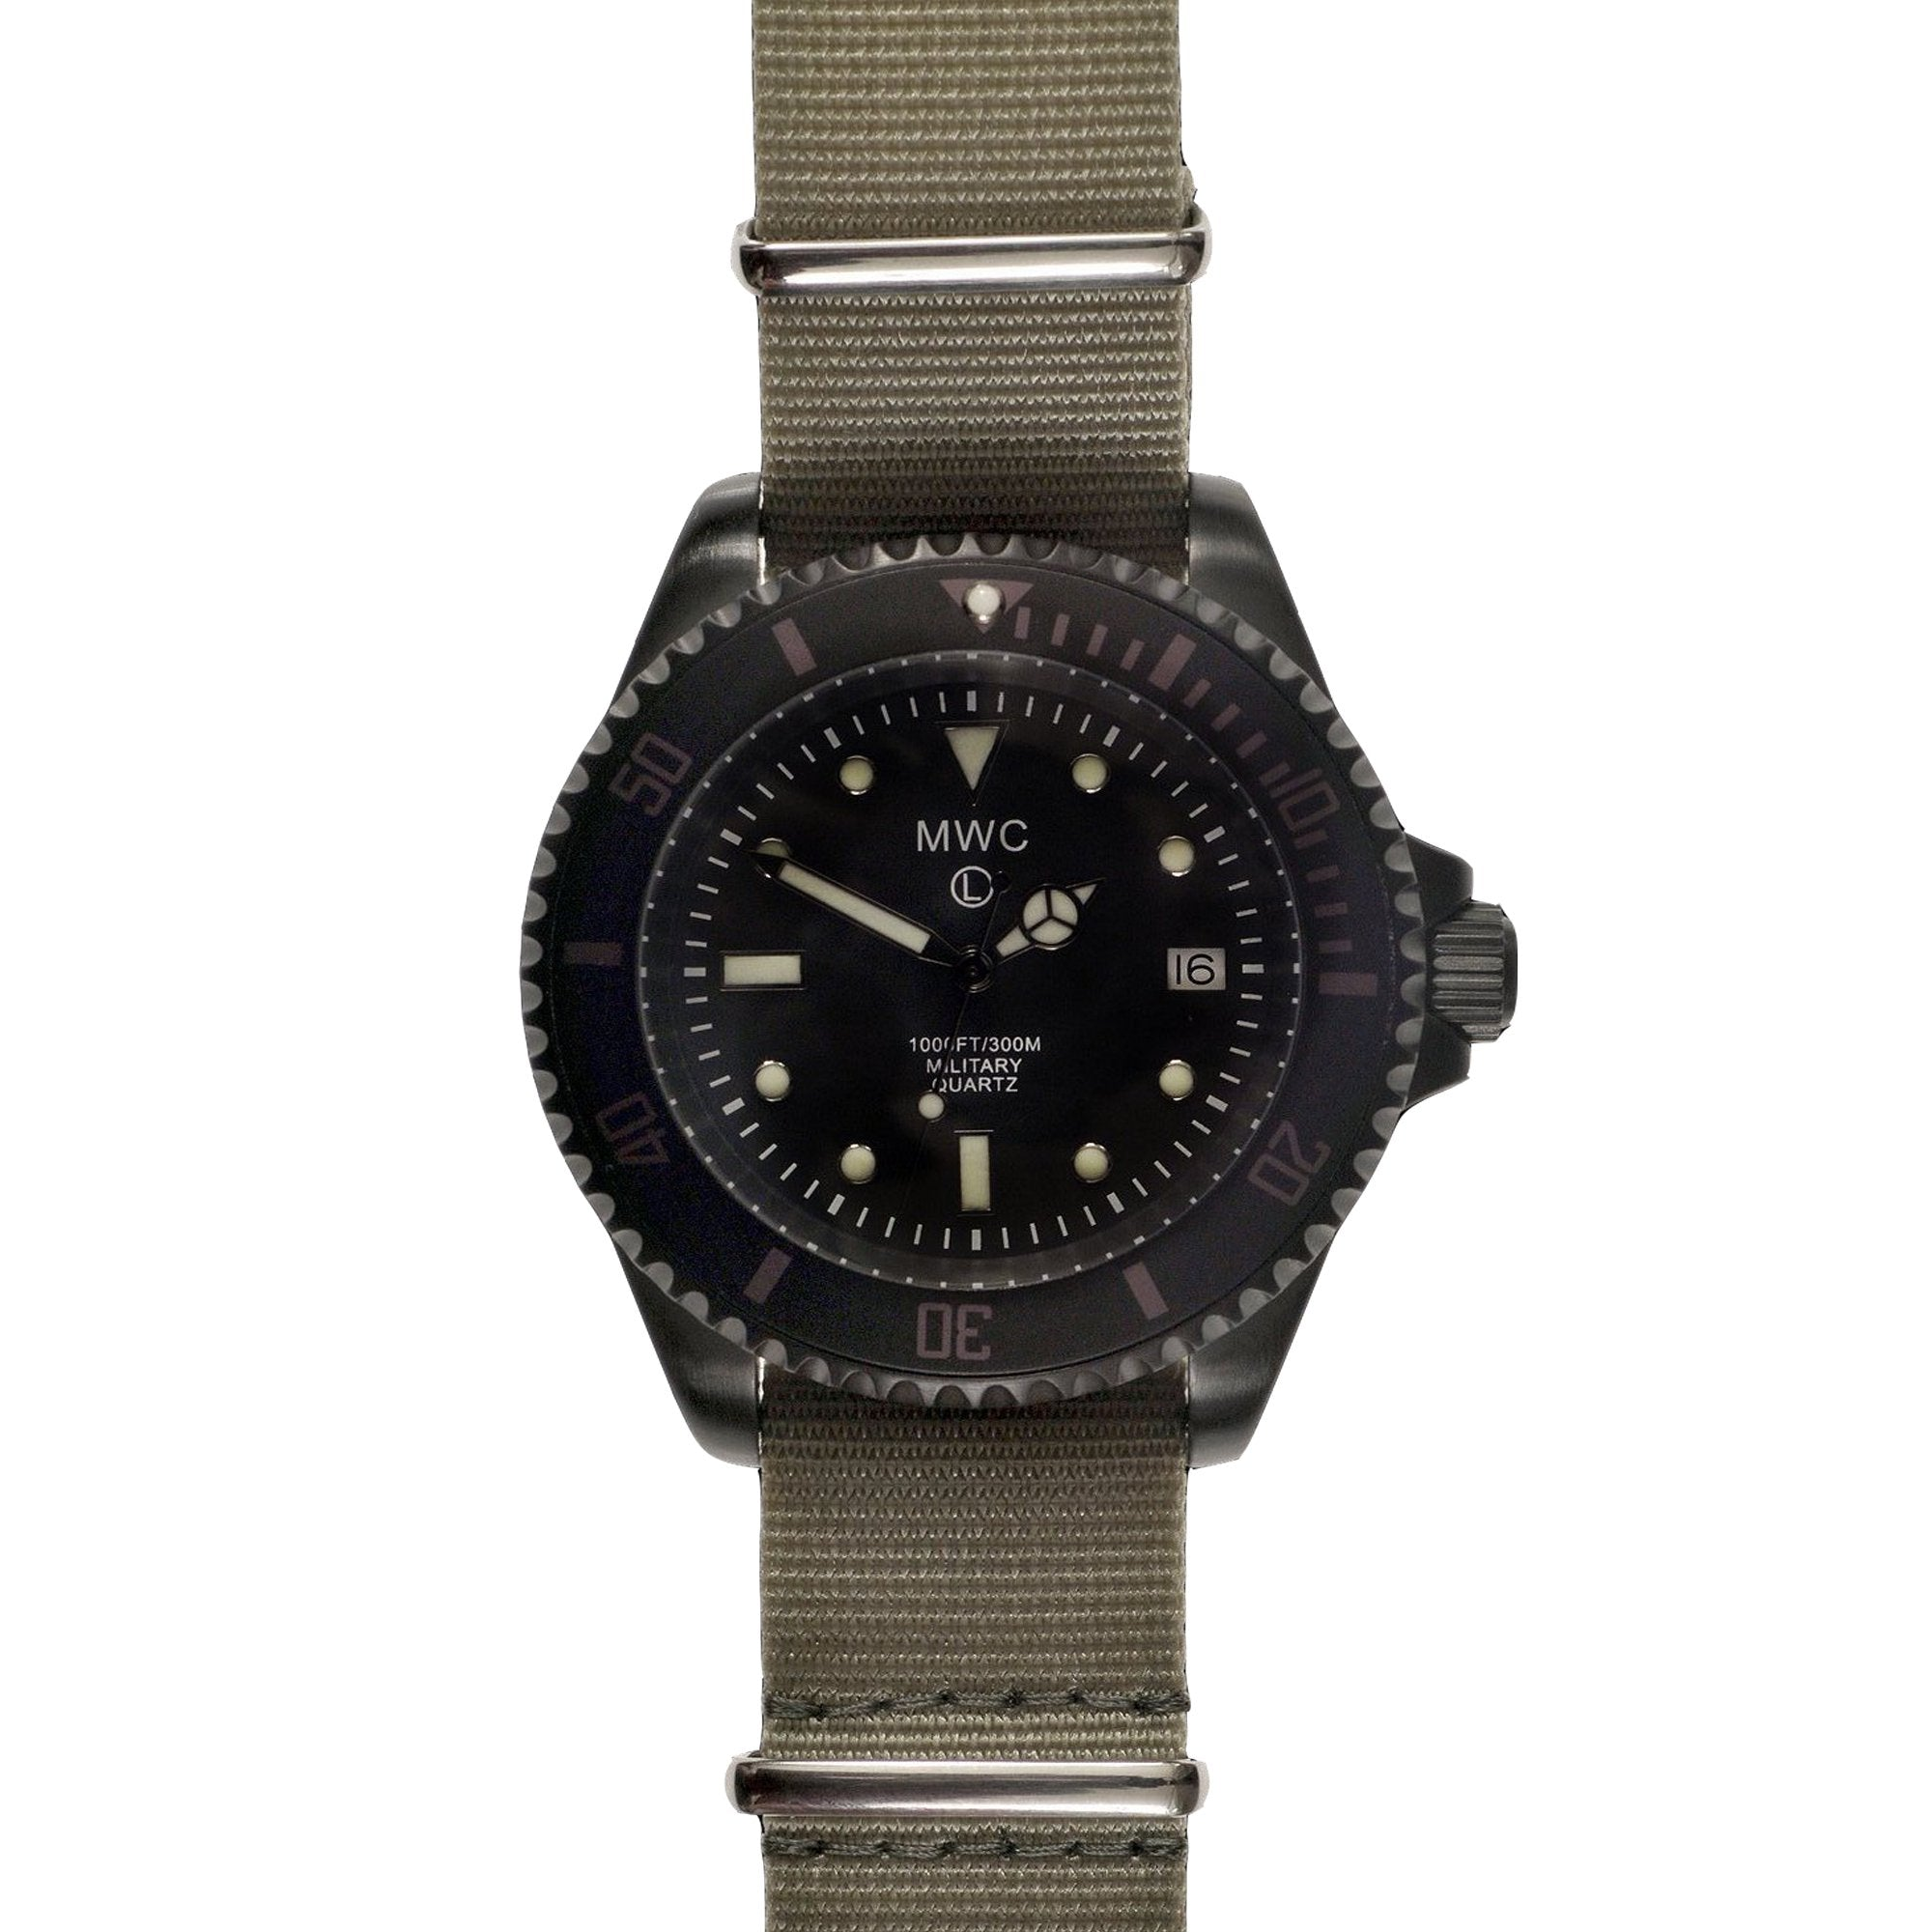 MWC Quartz 300m PVD Stainless Steel Submariner (Choice of Straps)